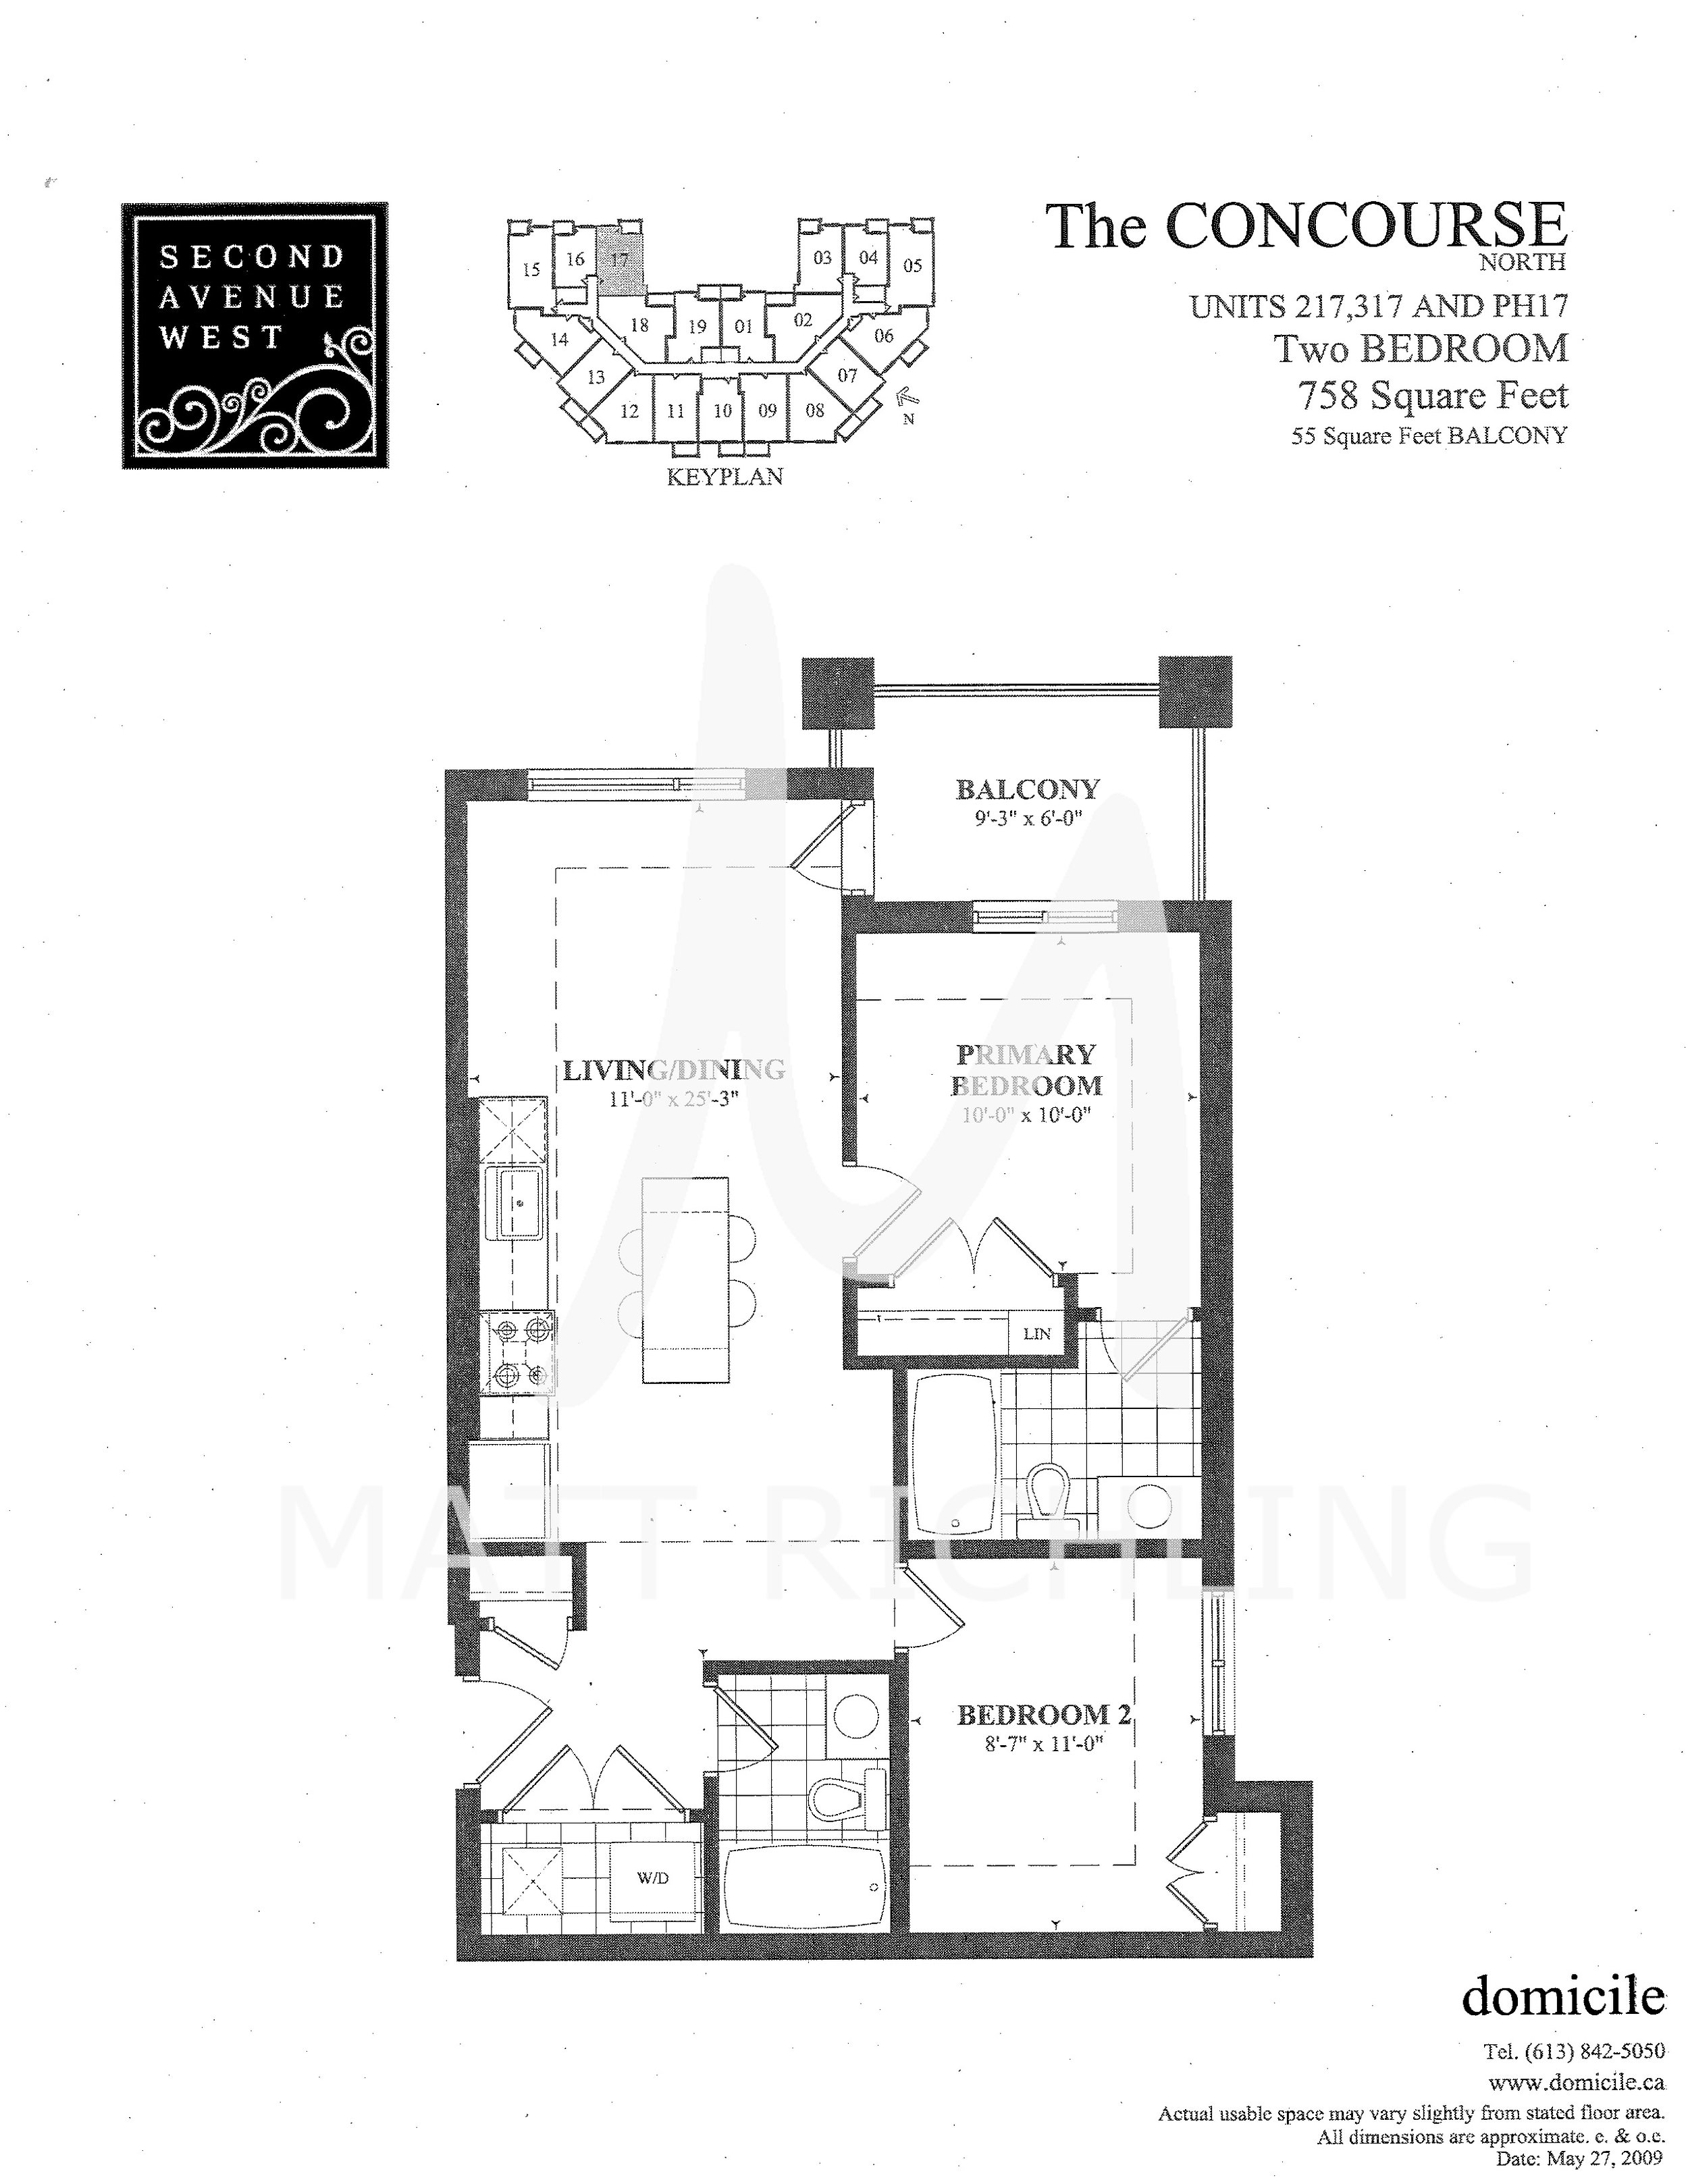 The-Concourse---2-Bed---217,317,PH17.jpg